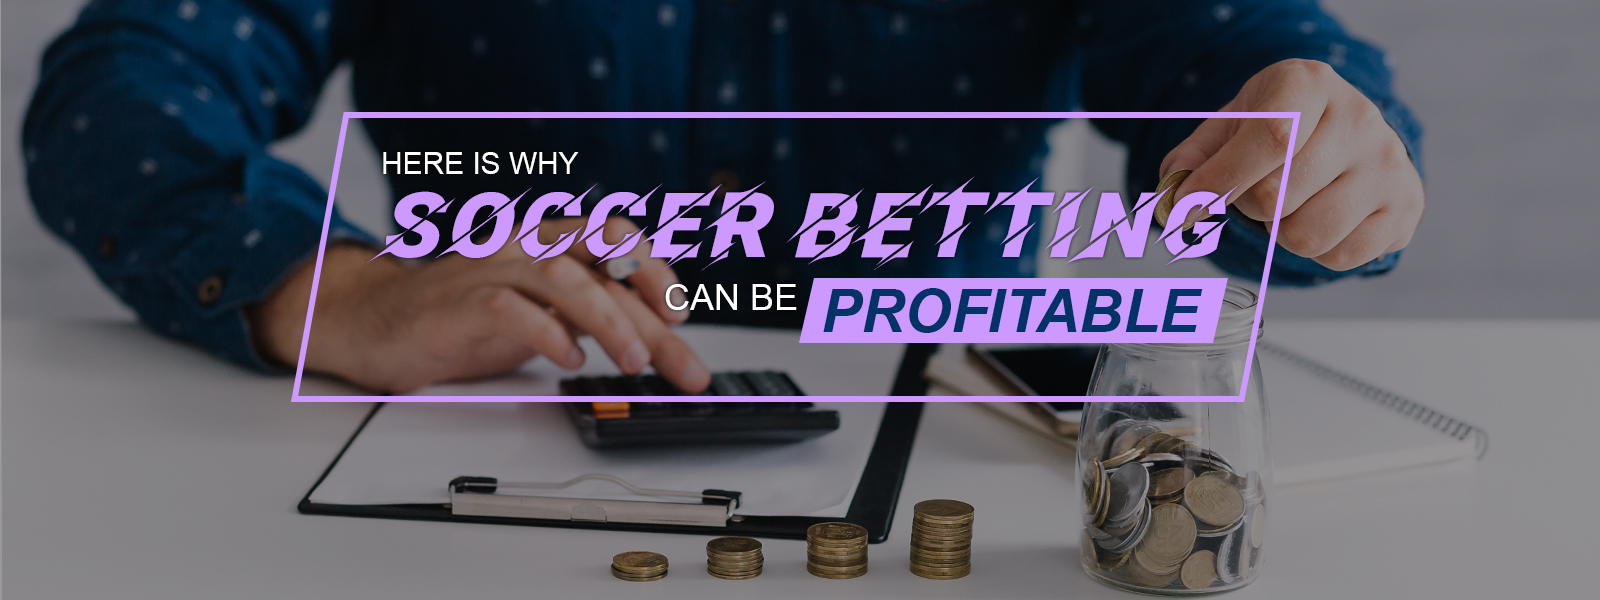 Here is Why Soccer Betting Can Be Profitable